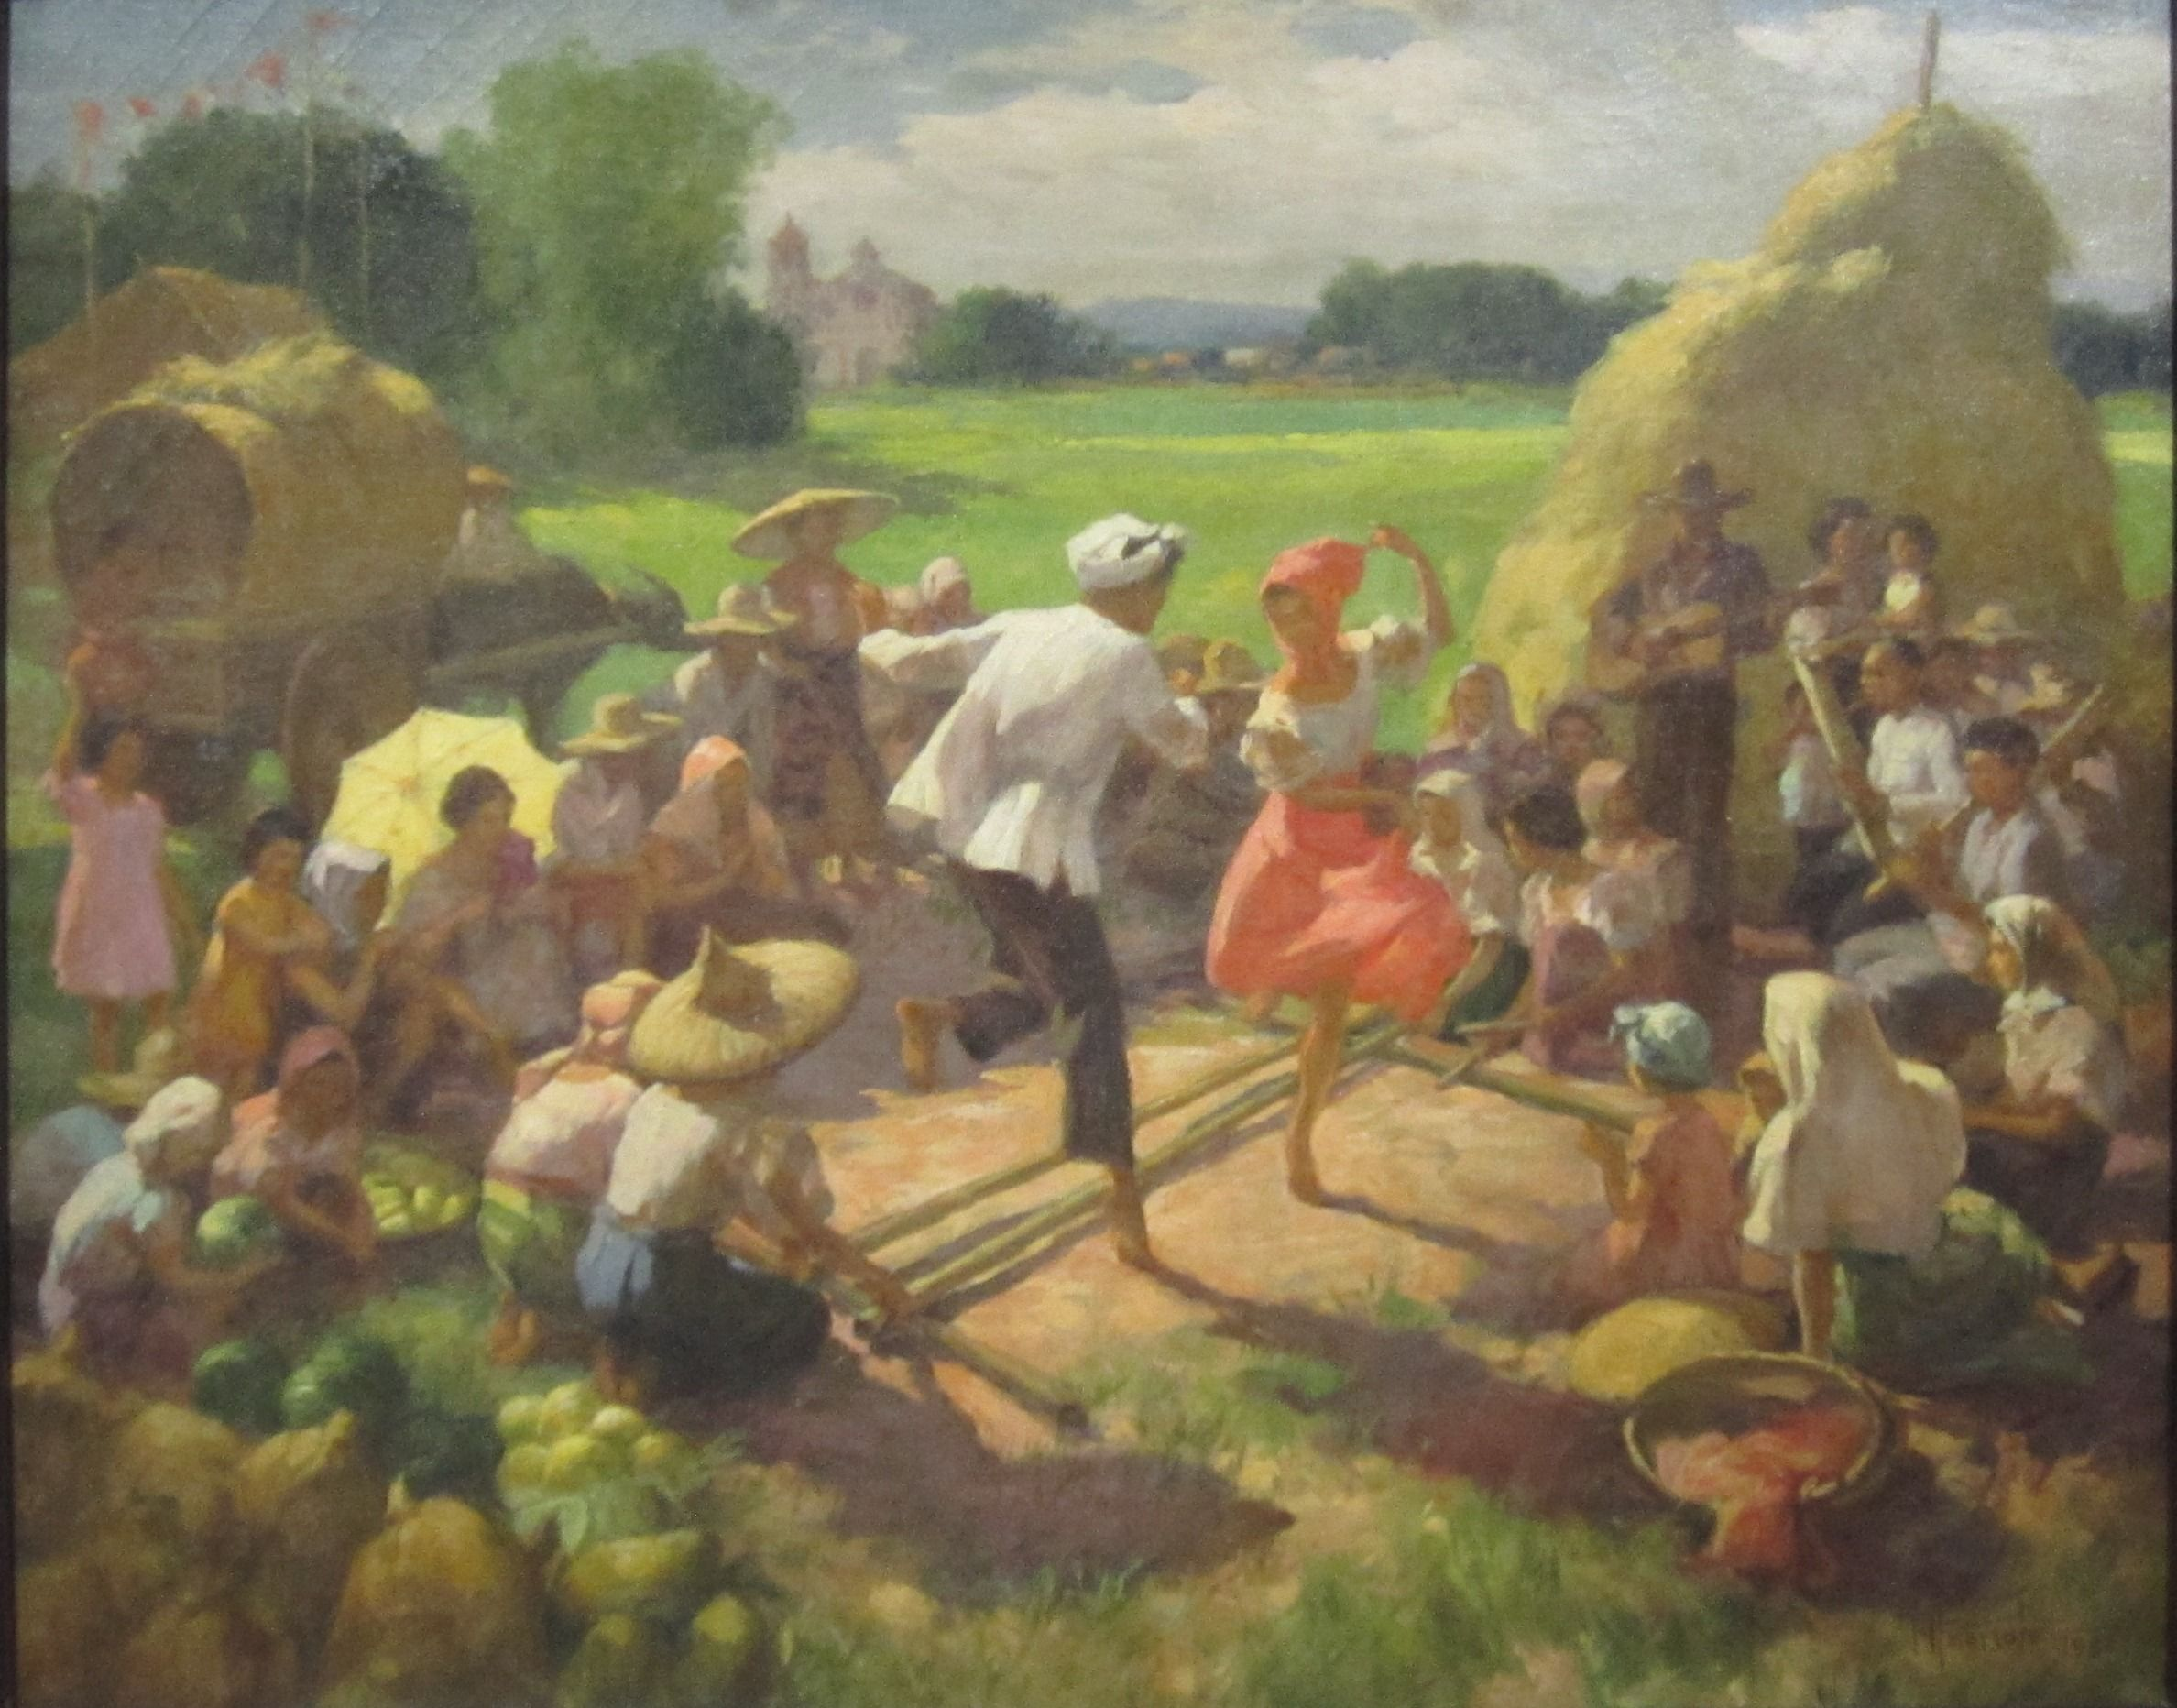 tinikling, traditional dance. | PLACE | Pinterest | Folk dance ... for Farm Philippines Painting  146hul